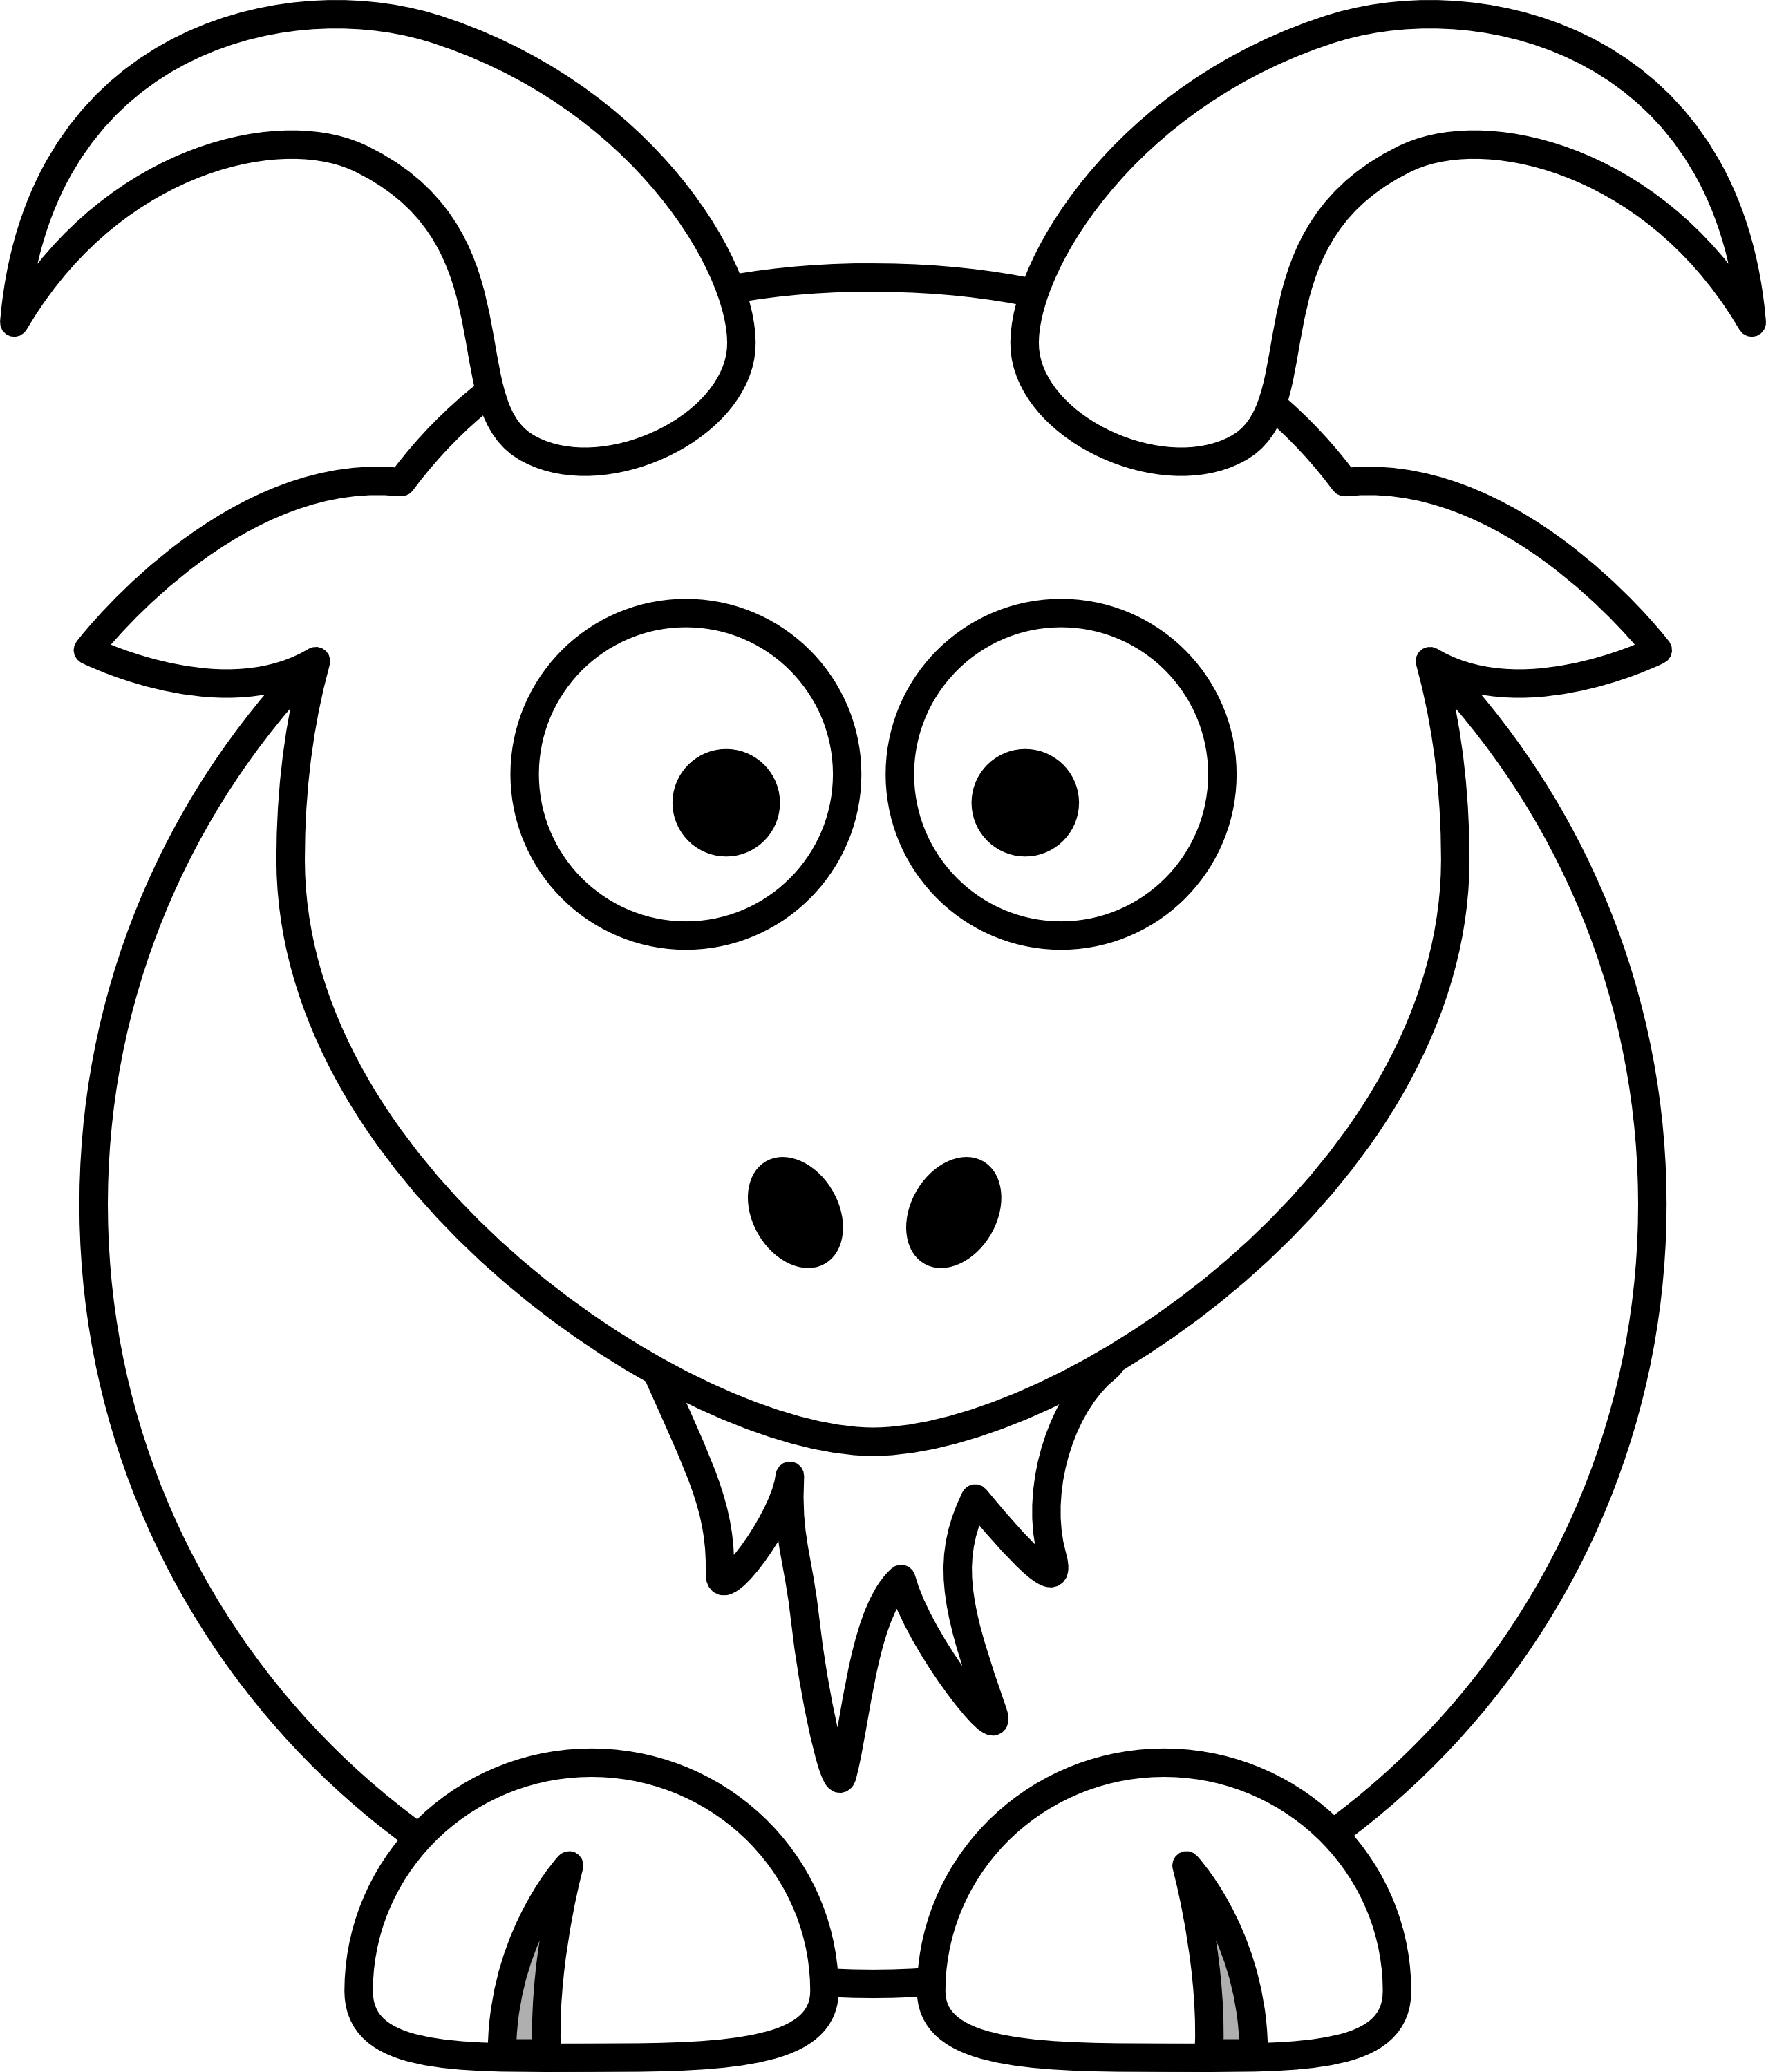 Animals clipart black and white. Best felting farm